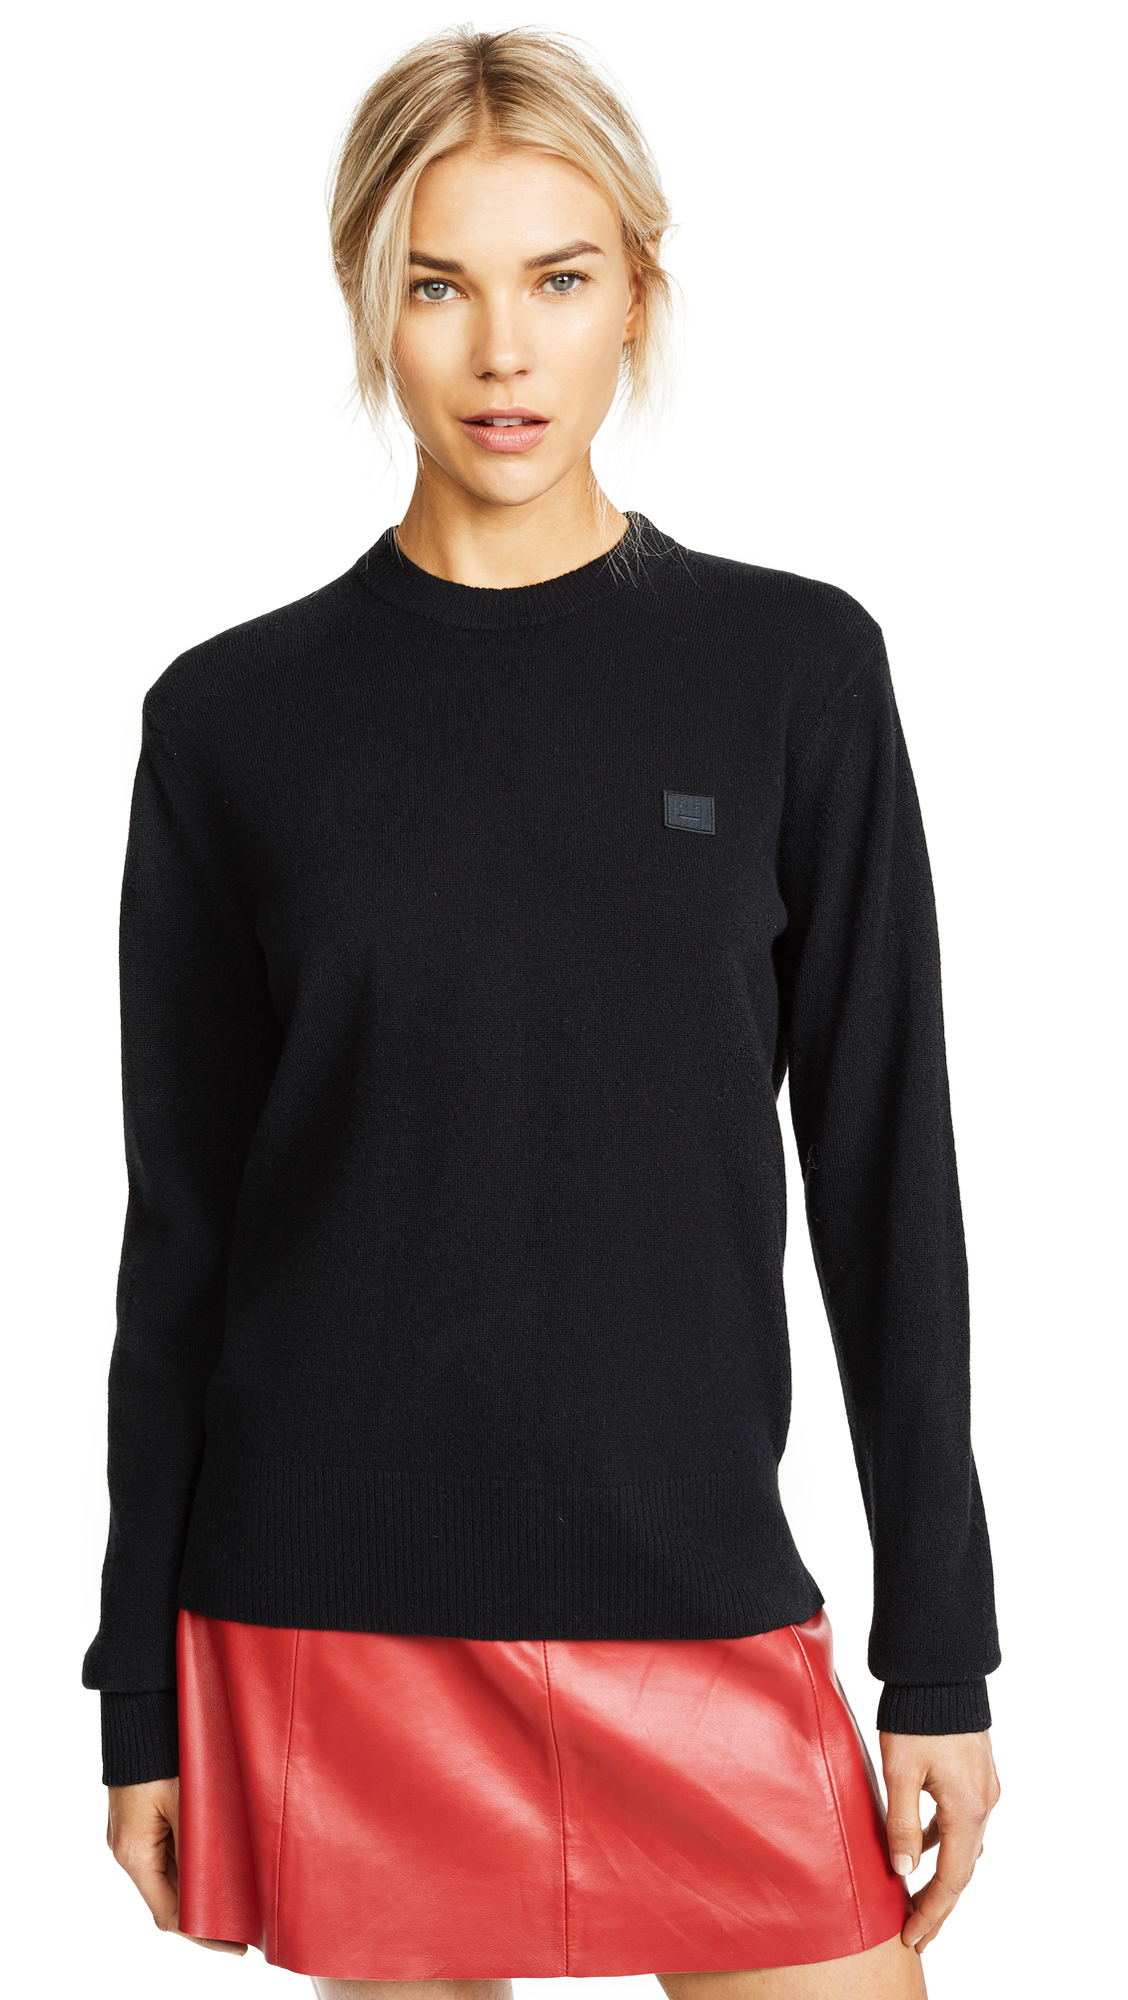 Crewneck Sweater Charcoal Melange in Black